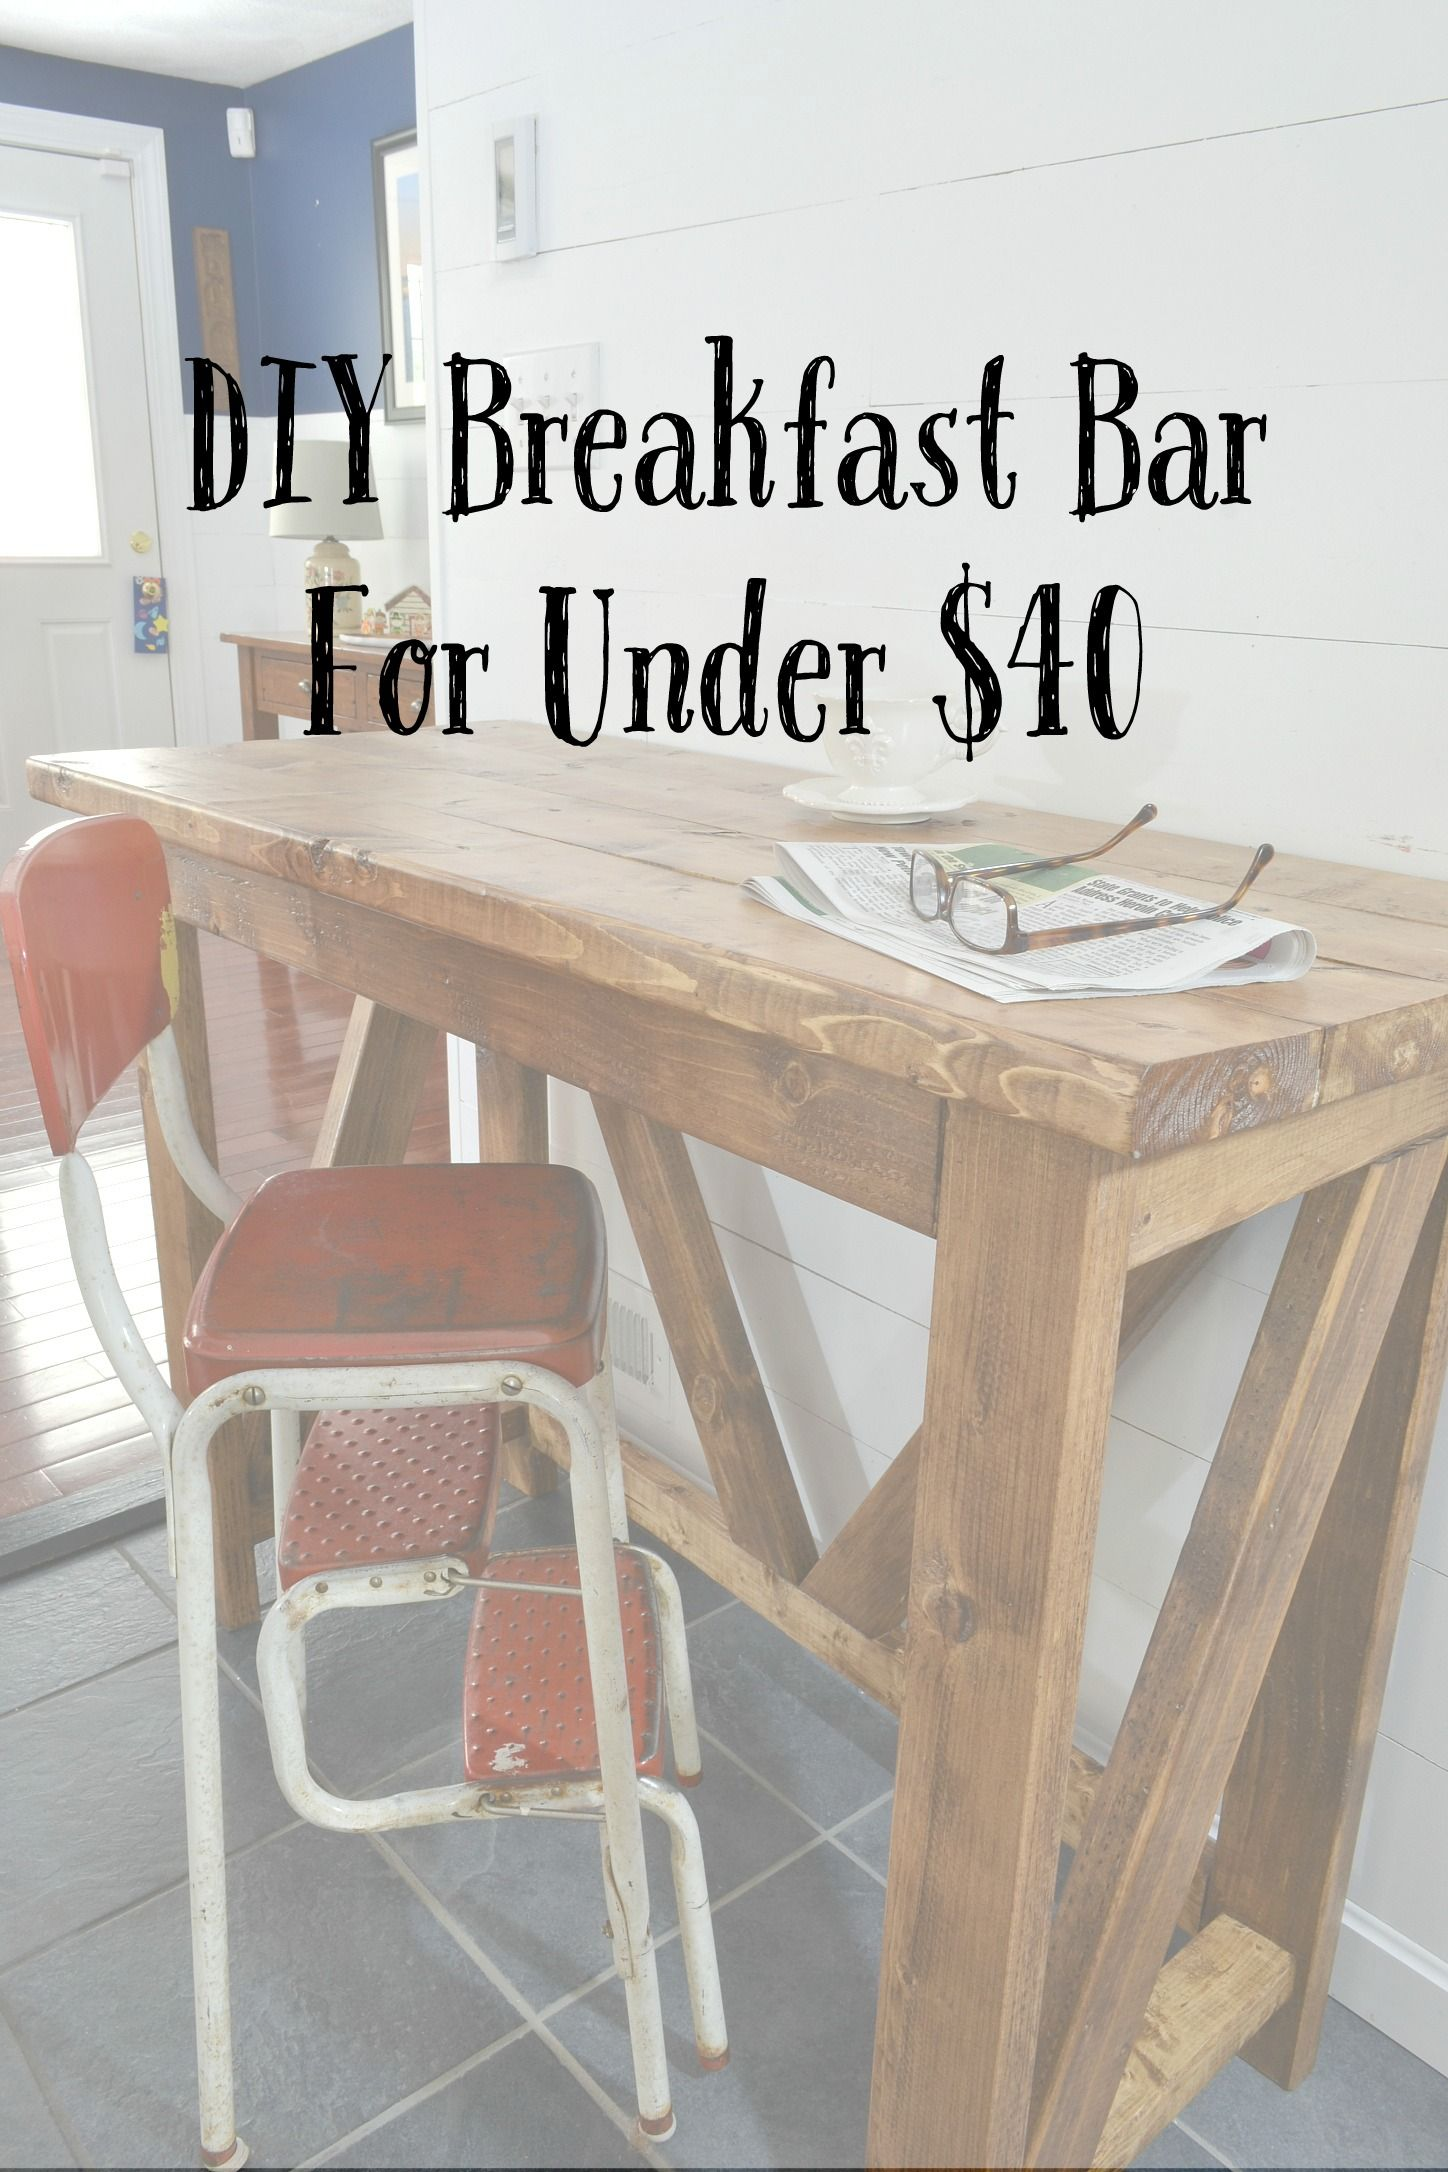 Inexpensive Diy Breakfast Bar With Images Bar Table Diy Diy Breakfast Bar Breakfast Bar Table